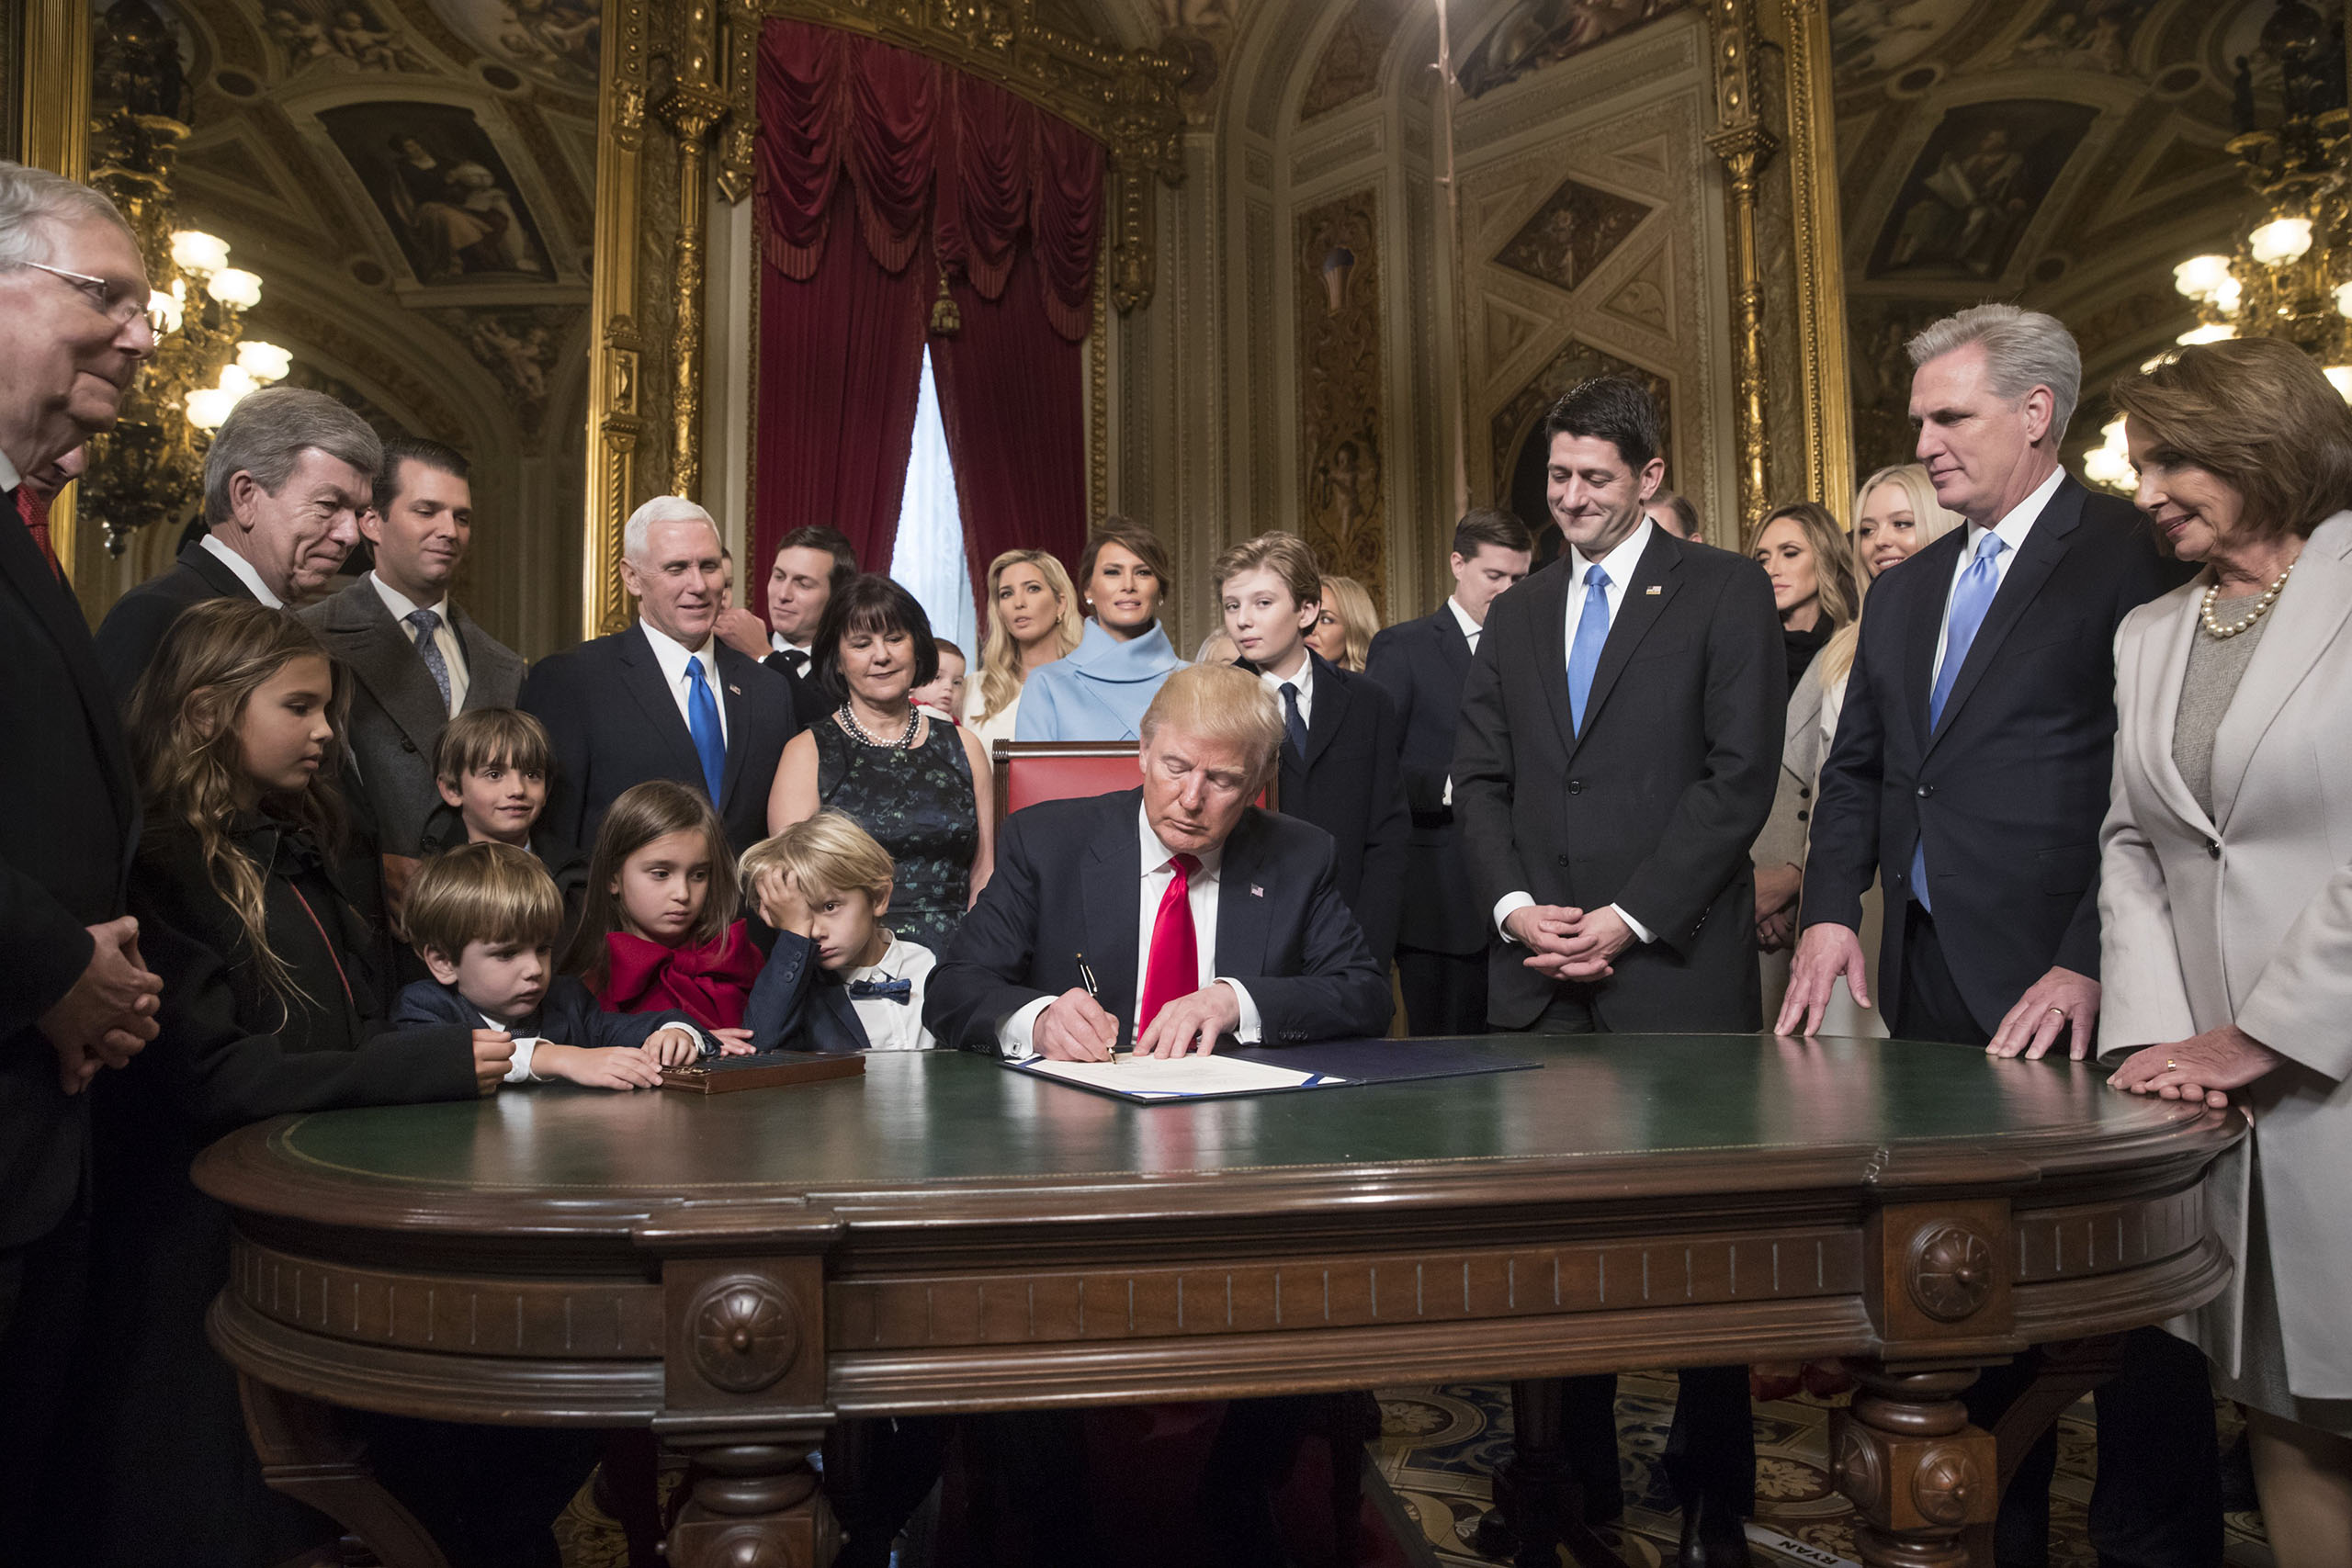 President Donald Trump is joined by the Congressional leadership and his family as he formally signs his cabinet nominations into law, in the President's Room of the Senate, at the Capitol in Washington, on Jan. 20, 2017.